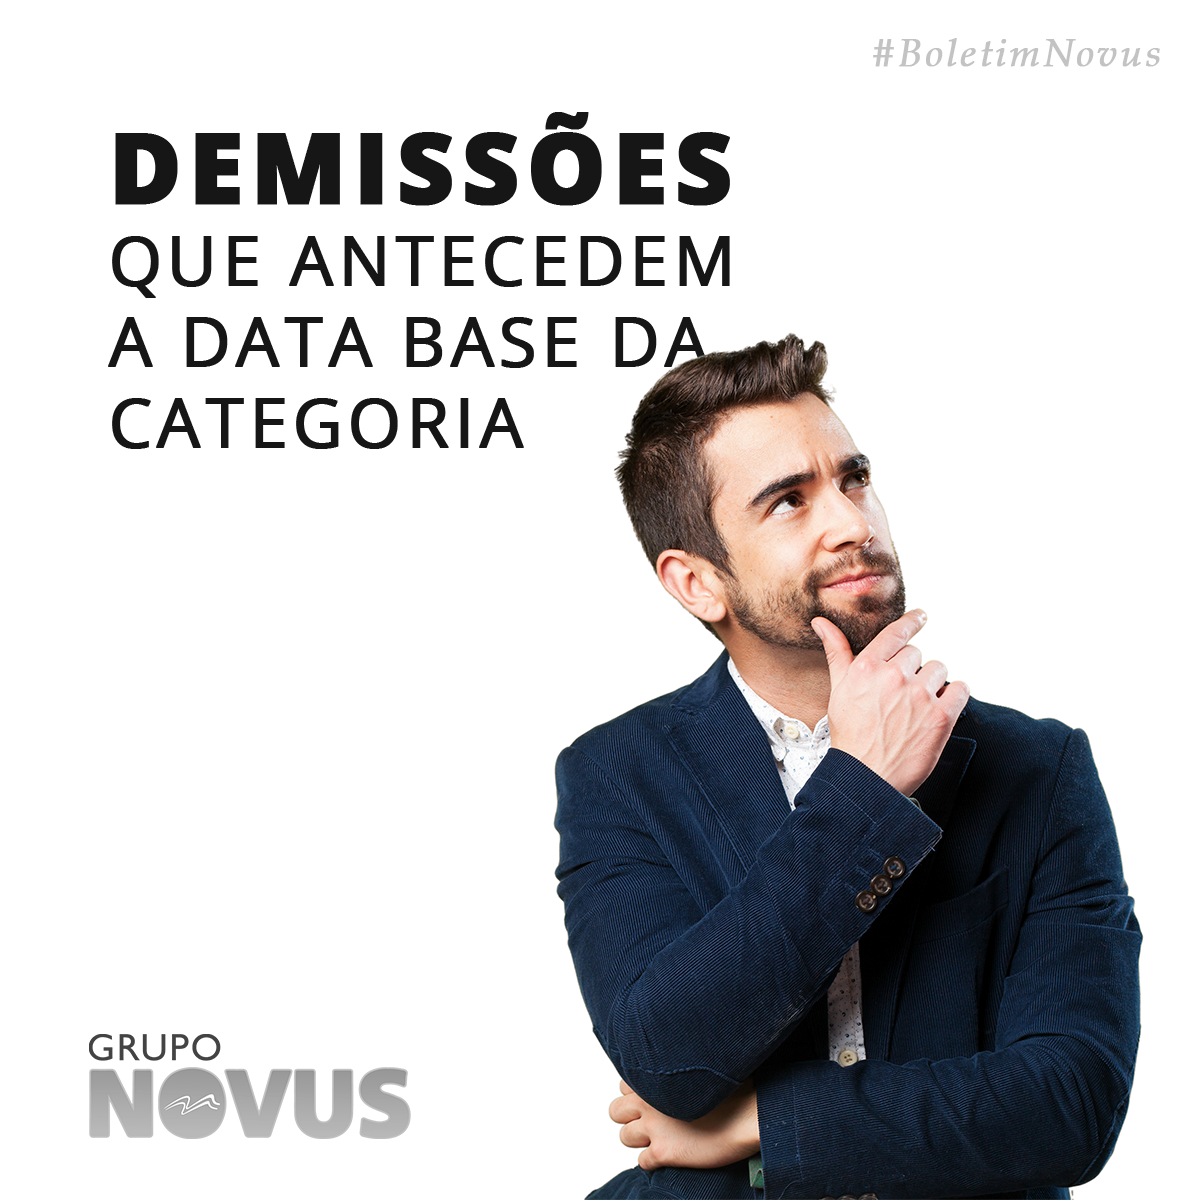 Demissões que antecedem a data base da categoria